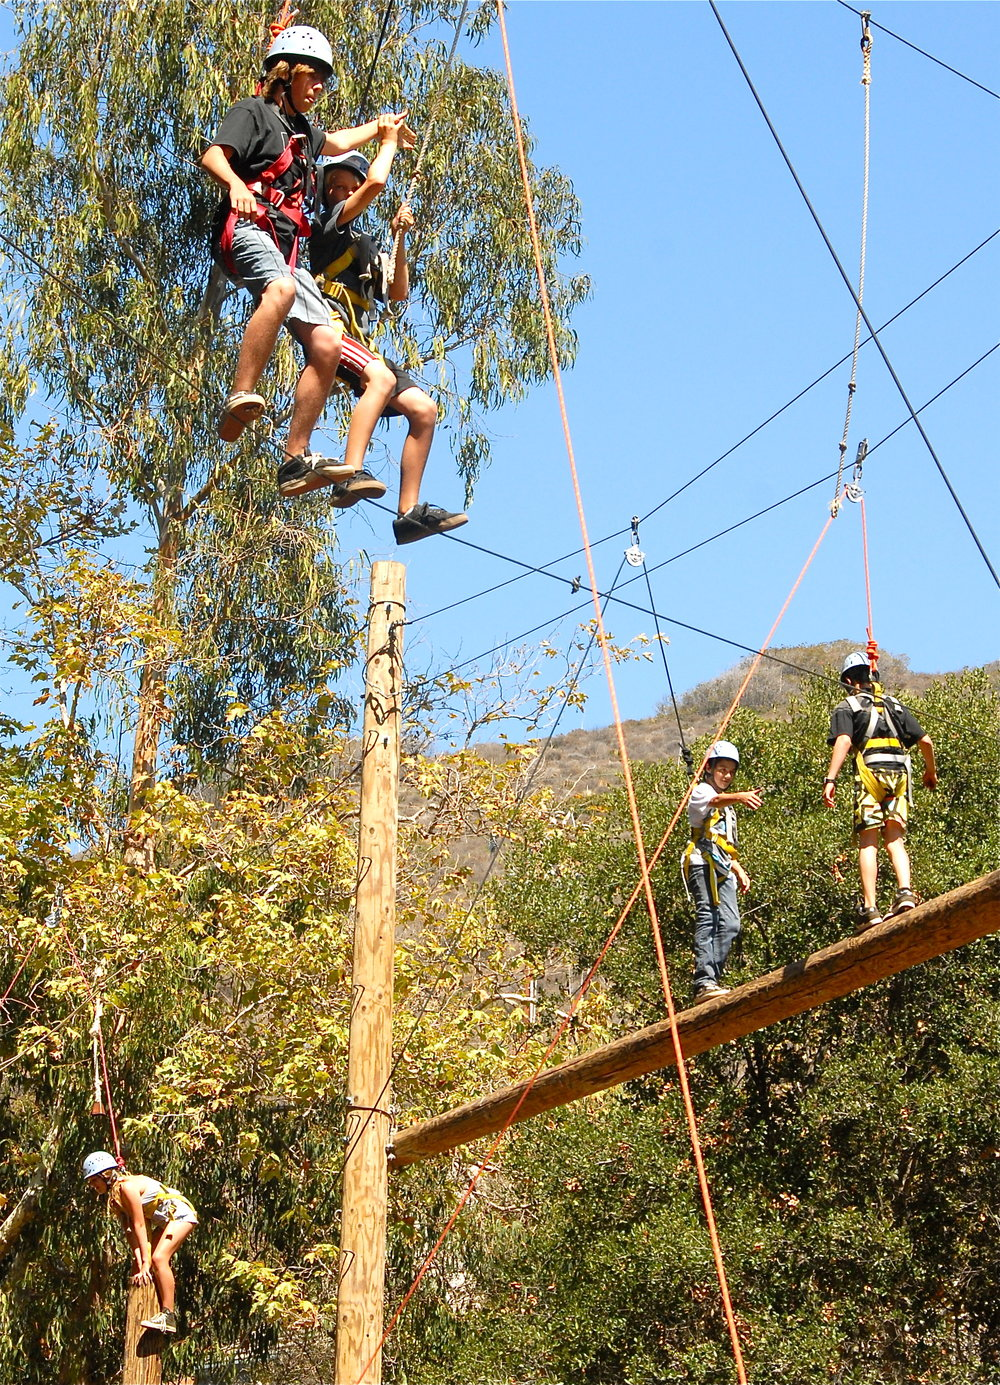 Hess Kramer ropes course two events.jpg